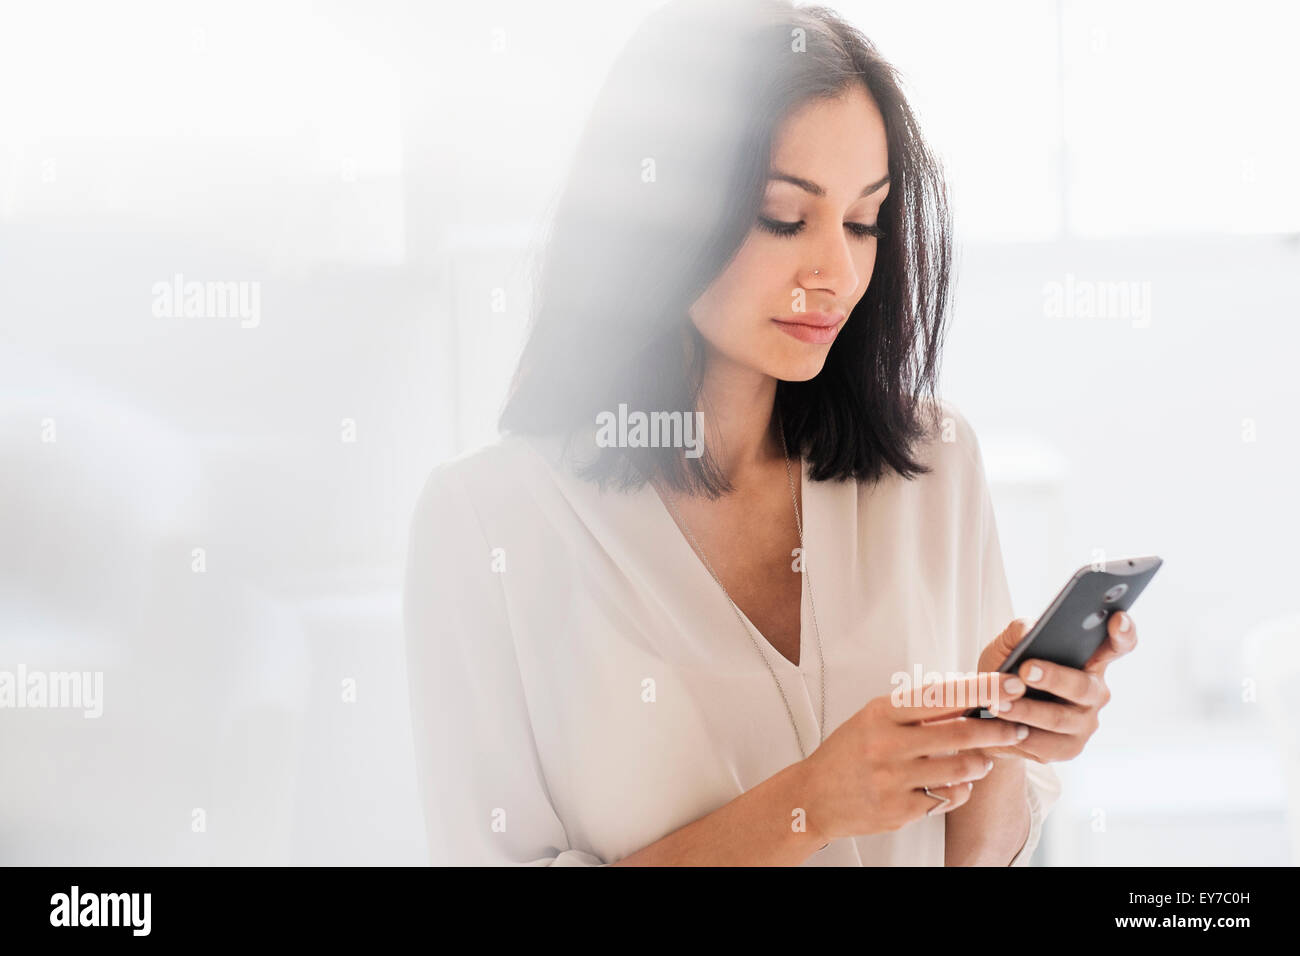 Woman using smart phone - Stock Image